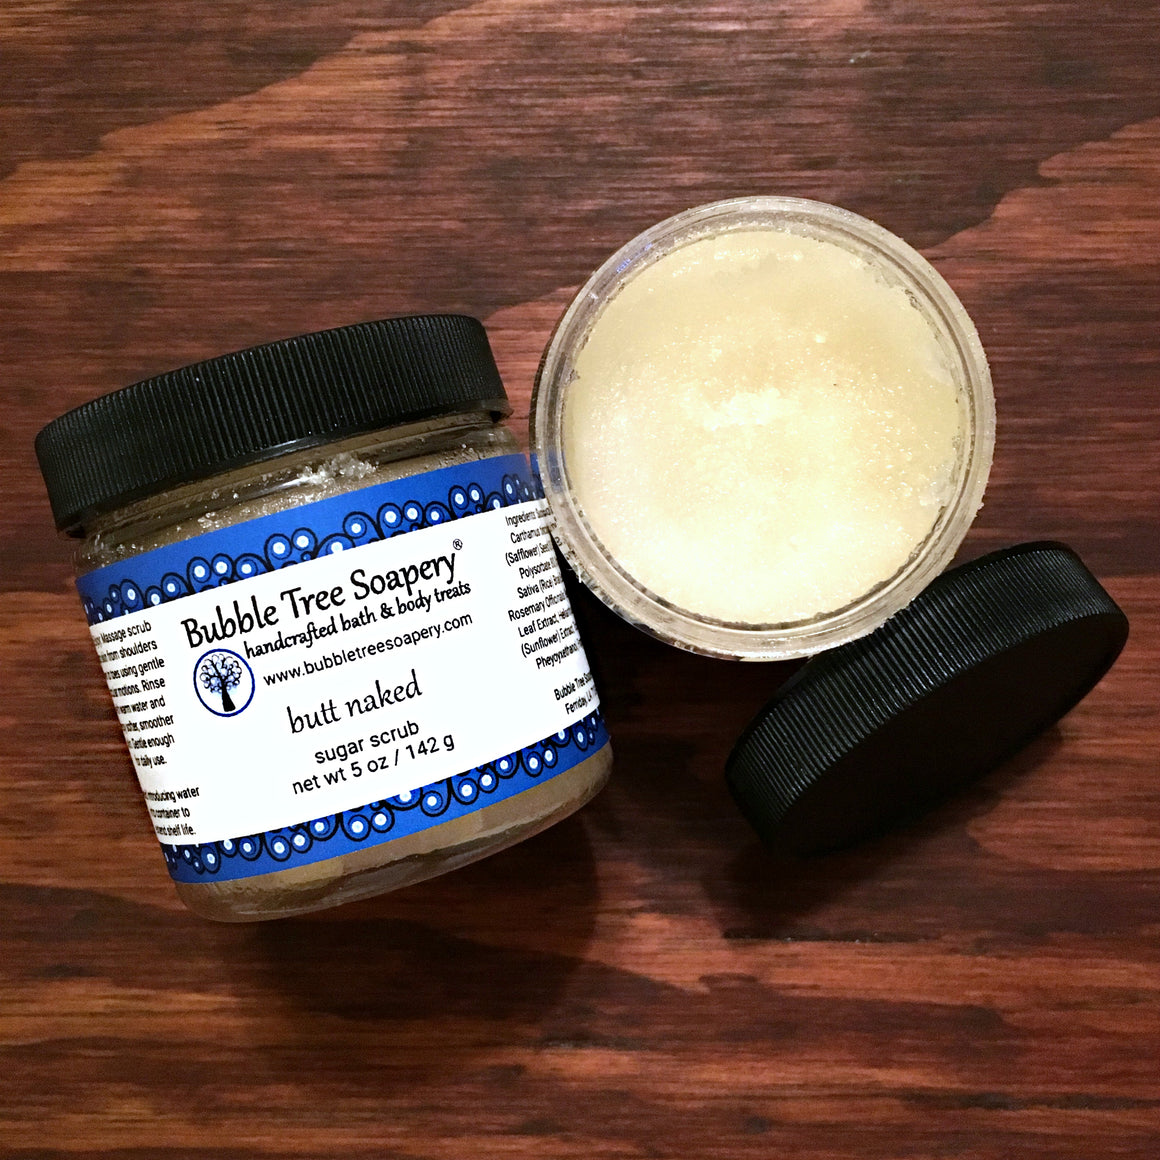 Butt Naked Sugar Scrub | Bubble Tree Soapery